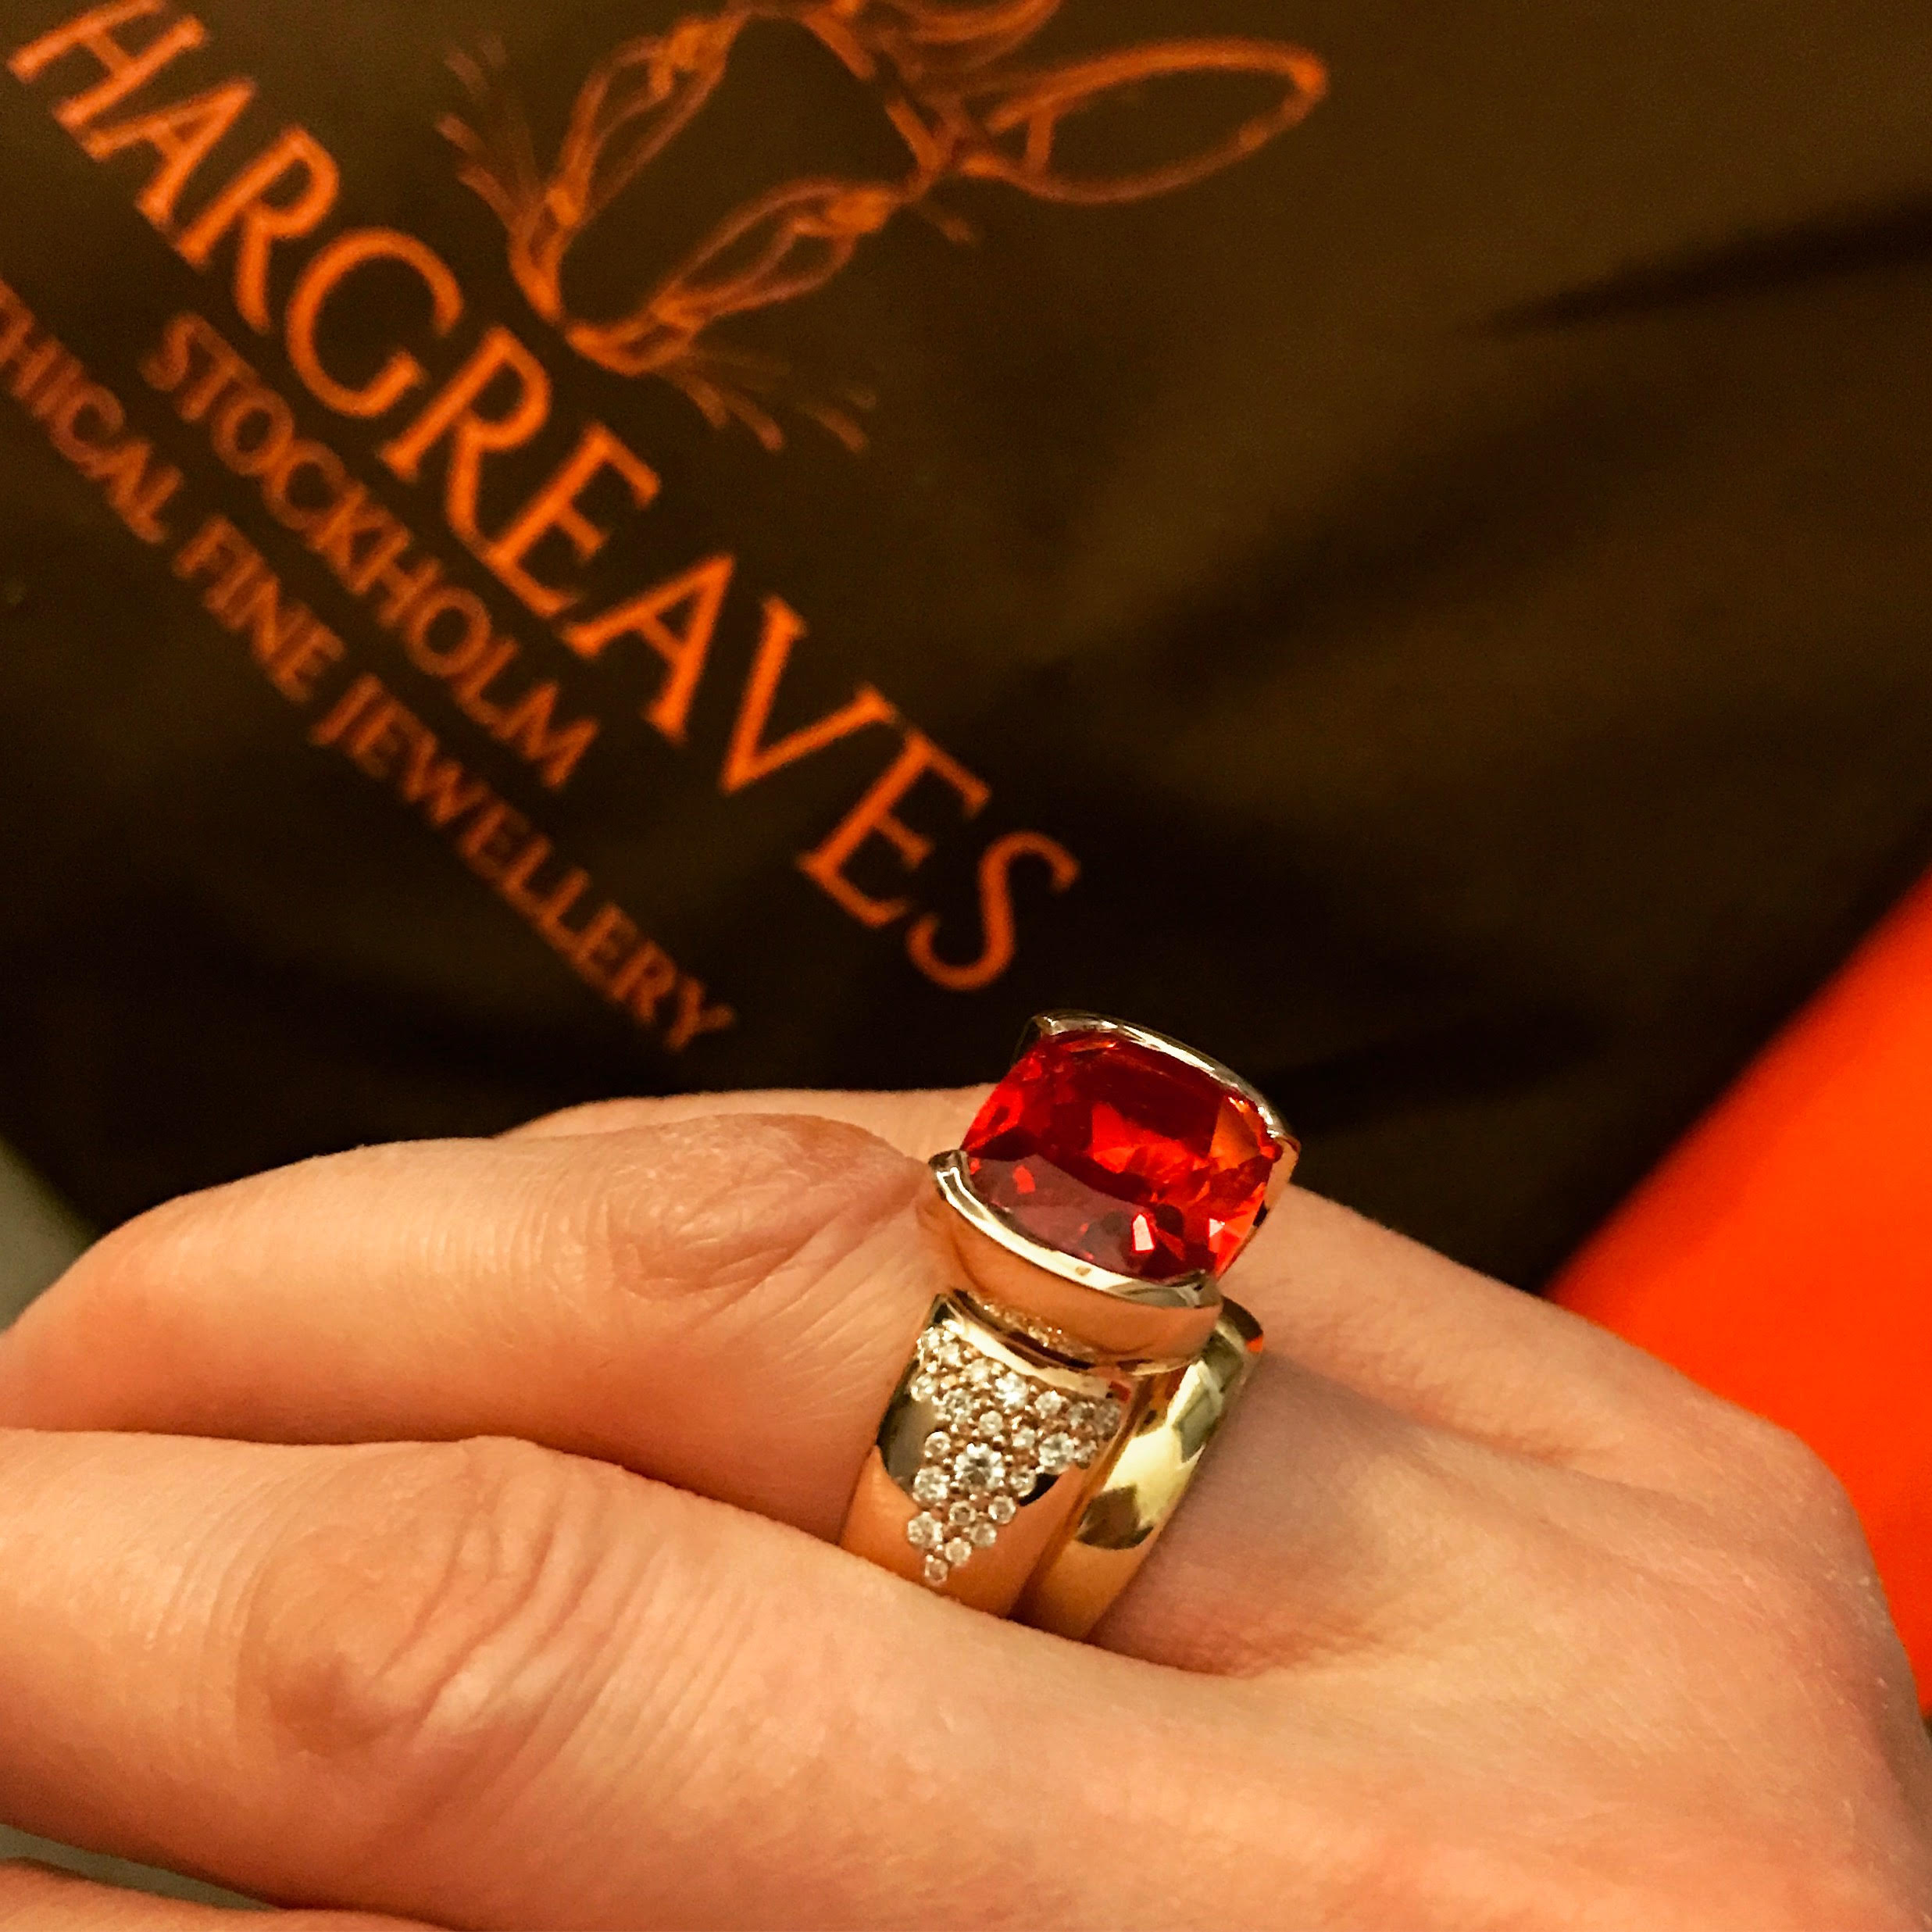 Our Freyr ring; 18ct red Fairmined Eco gold set with an incredible cultured bright orange sapphire and a cascade of non mined diamonds.